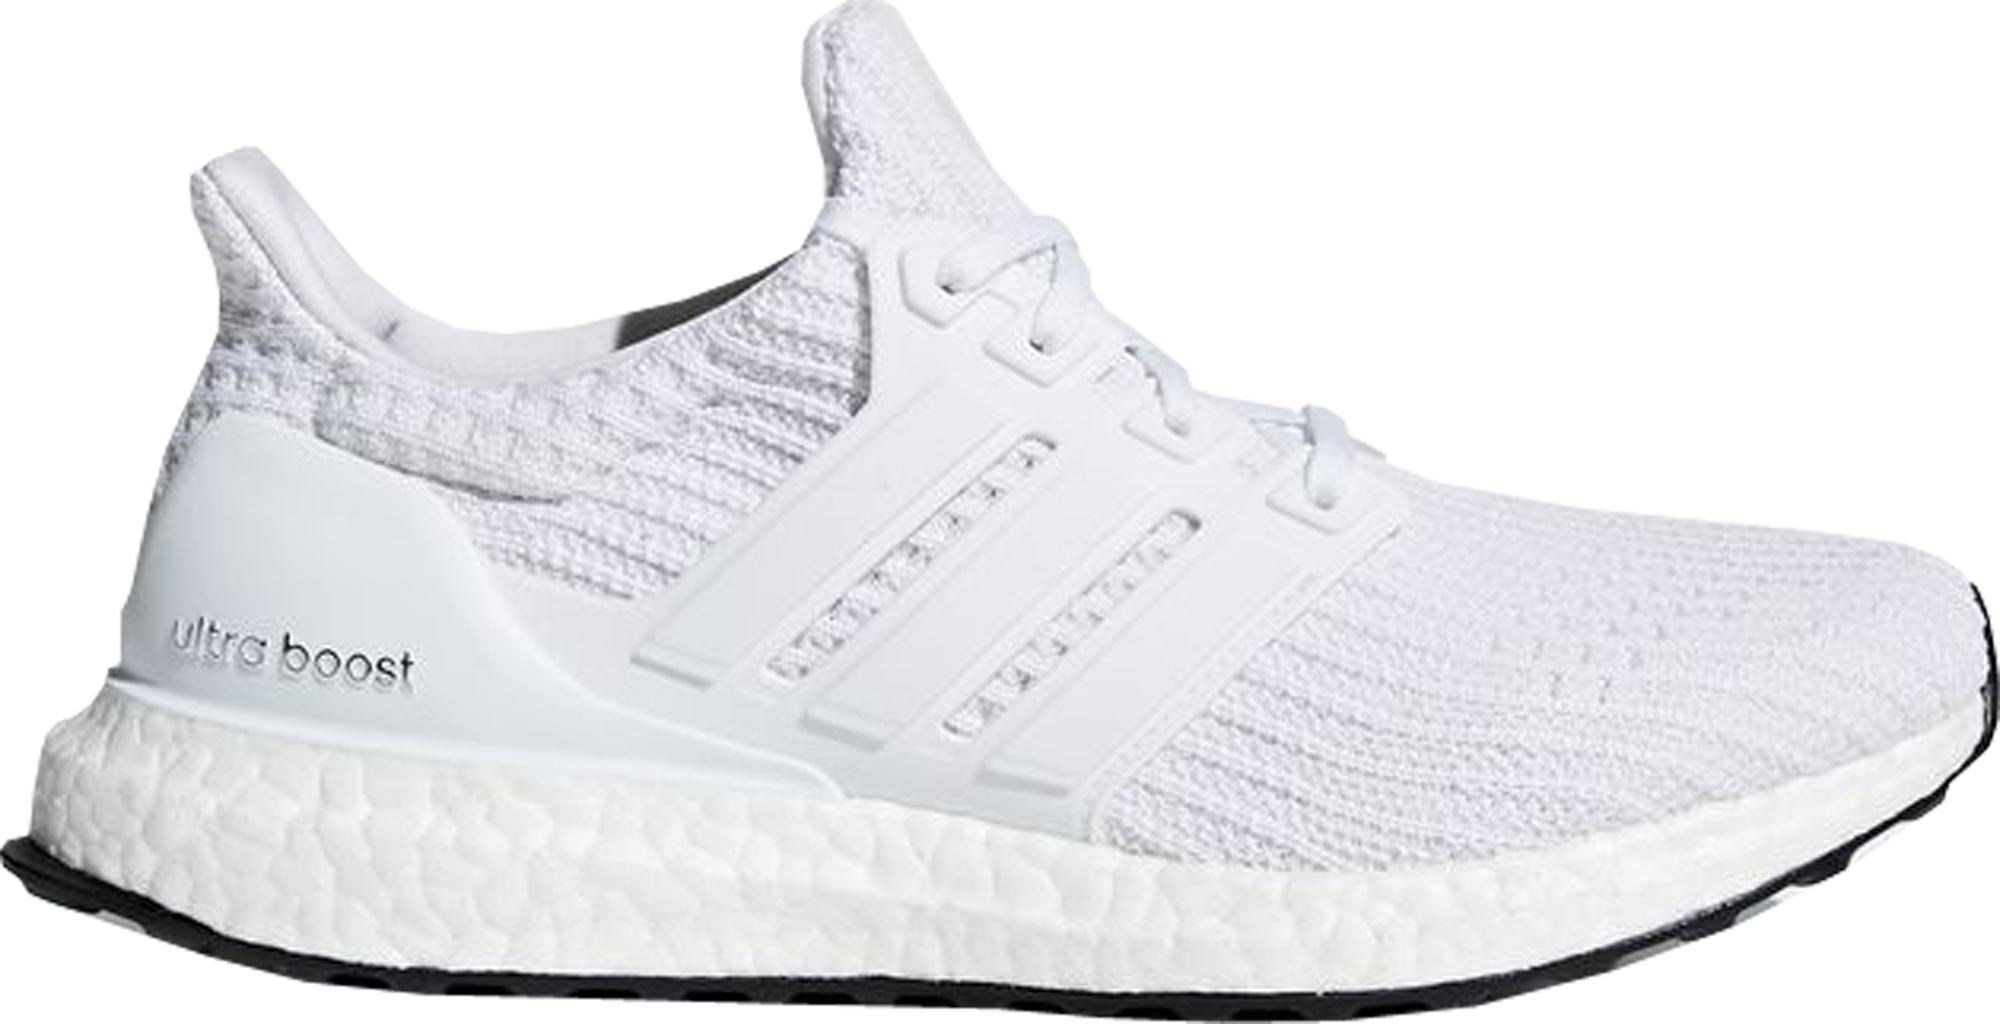 hot sale online 6b399 5a714 Adidas X Undefeated Ultra Boost Stockx Korki Adidas Ace 2016 ...